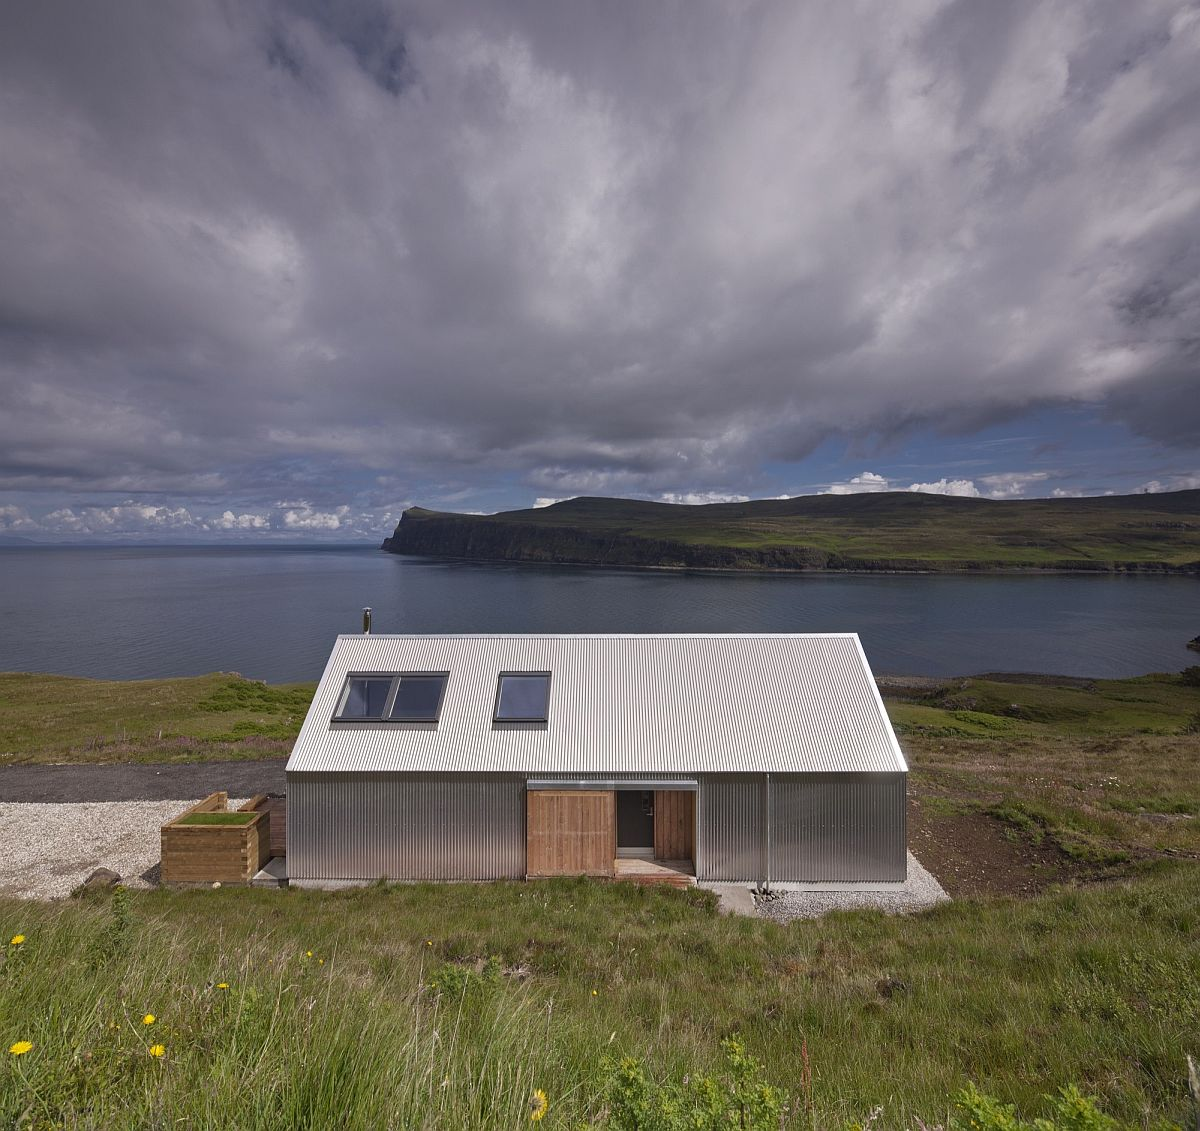 Tinhouse on the Isle of Skye overlooks a lovely natural landscape